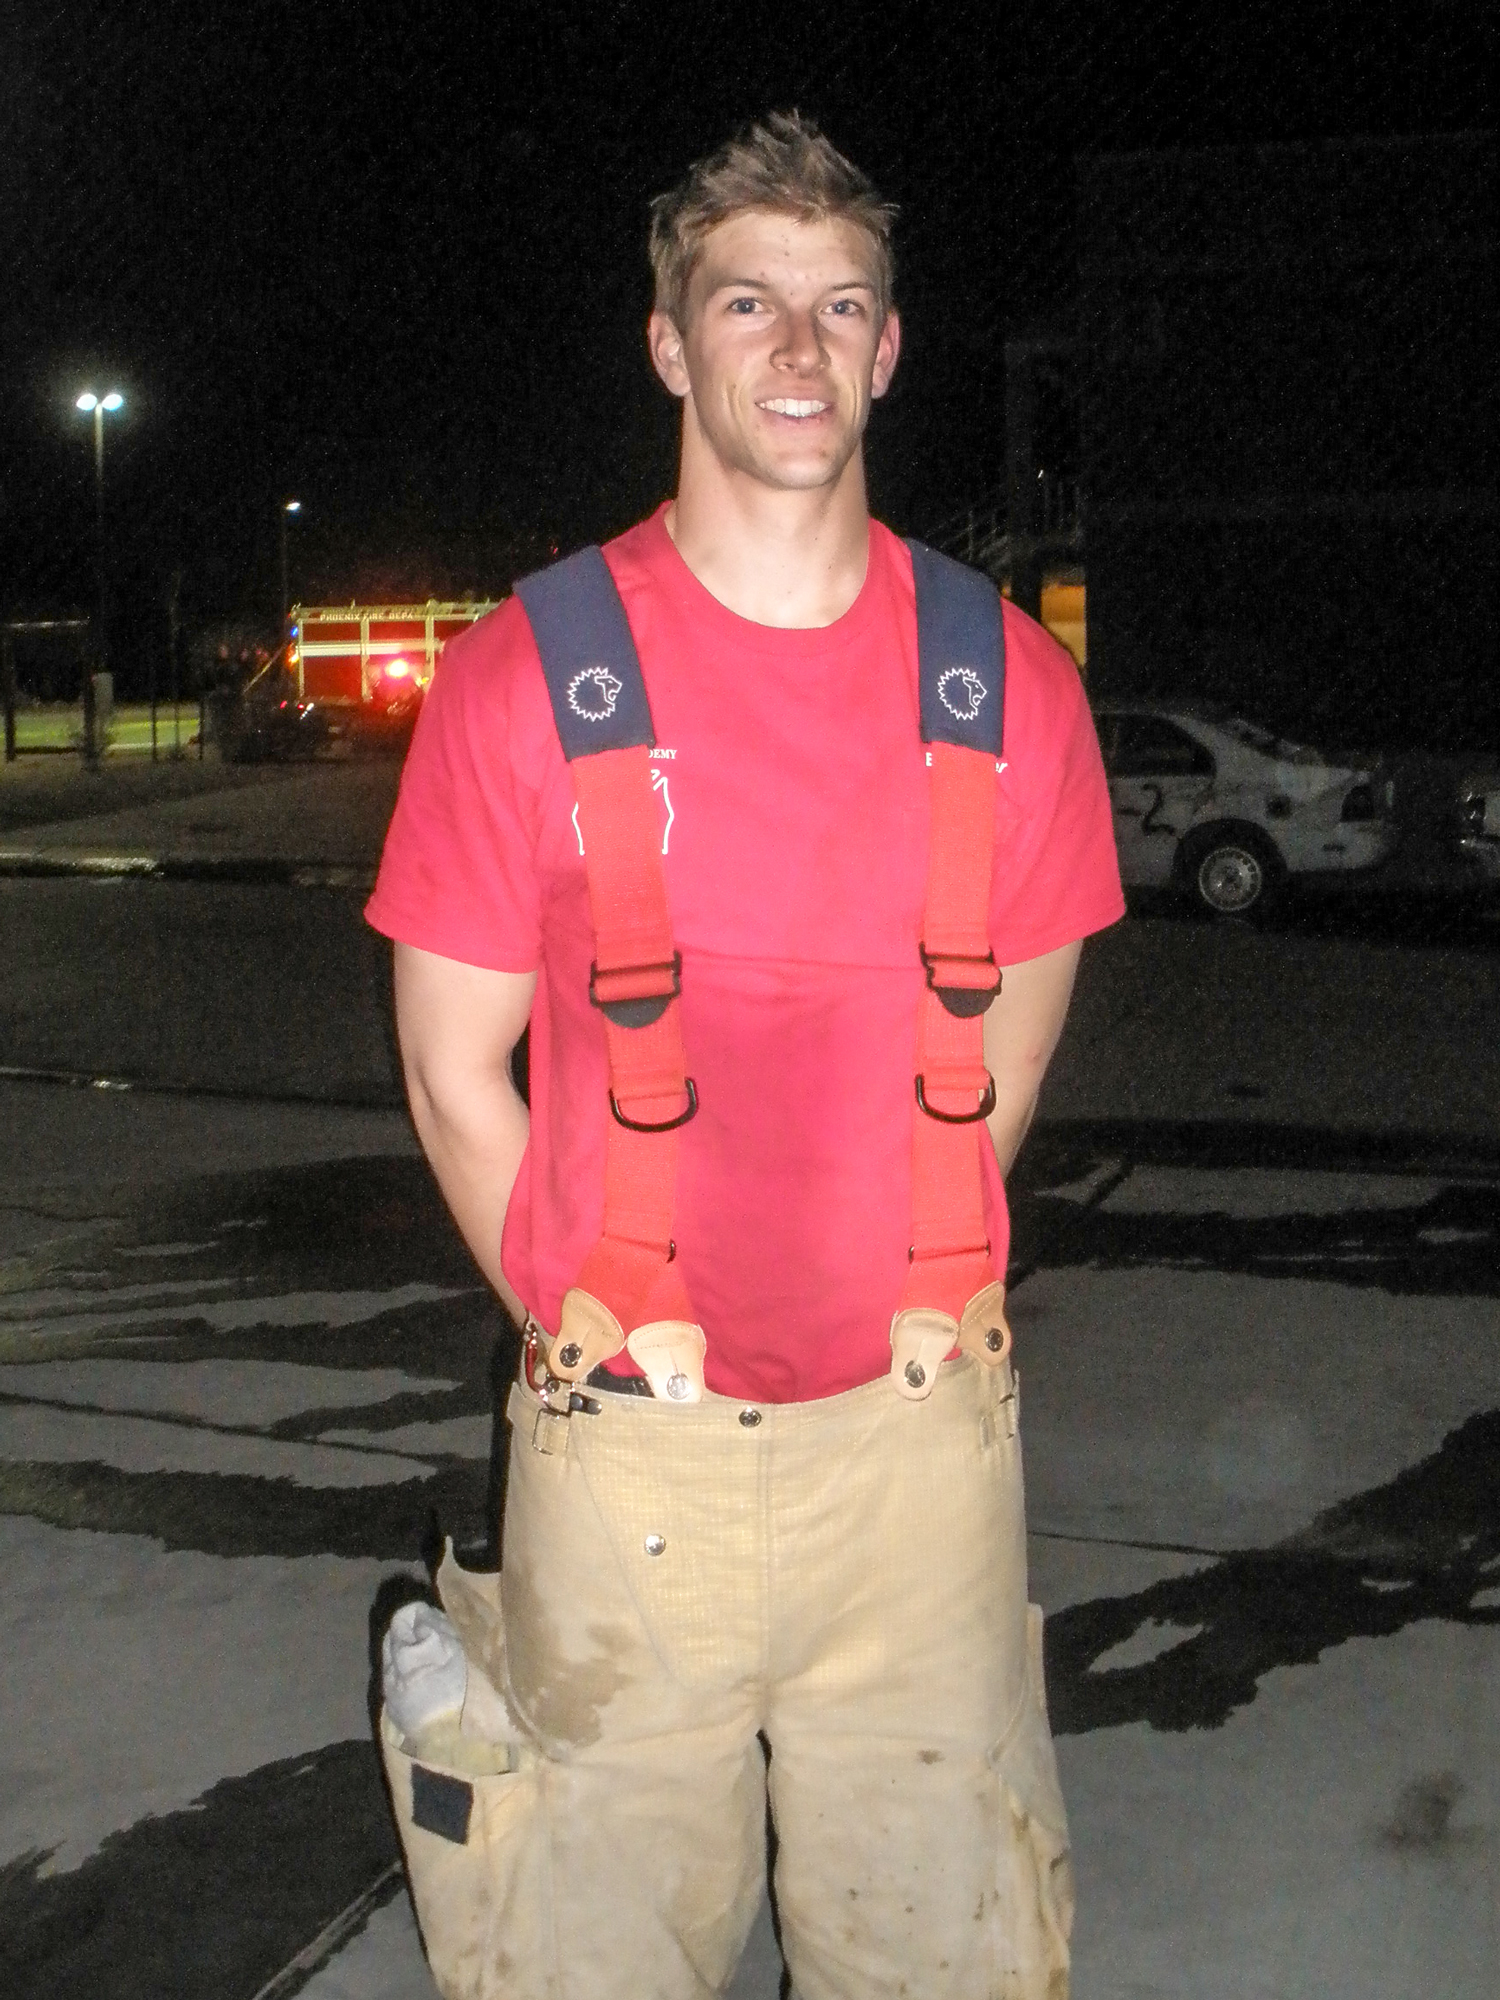 Phoenix Firefighter Brad Harper, 23, of Peoria, Arizona, died while on the scene of a two-alarm fire on May 19, 2013. Harper loved being a firefighter and had worked with the Phoenix Fire Department, where he was assigned to Rescue 21, for two years. He is survived by his wife, Lena; three younger brothers, Ryan, Daniel and Jacob; and parents, Bob and Cyndy.